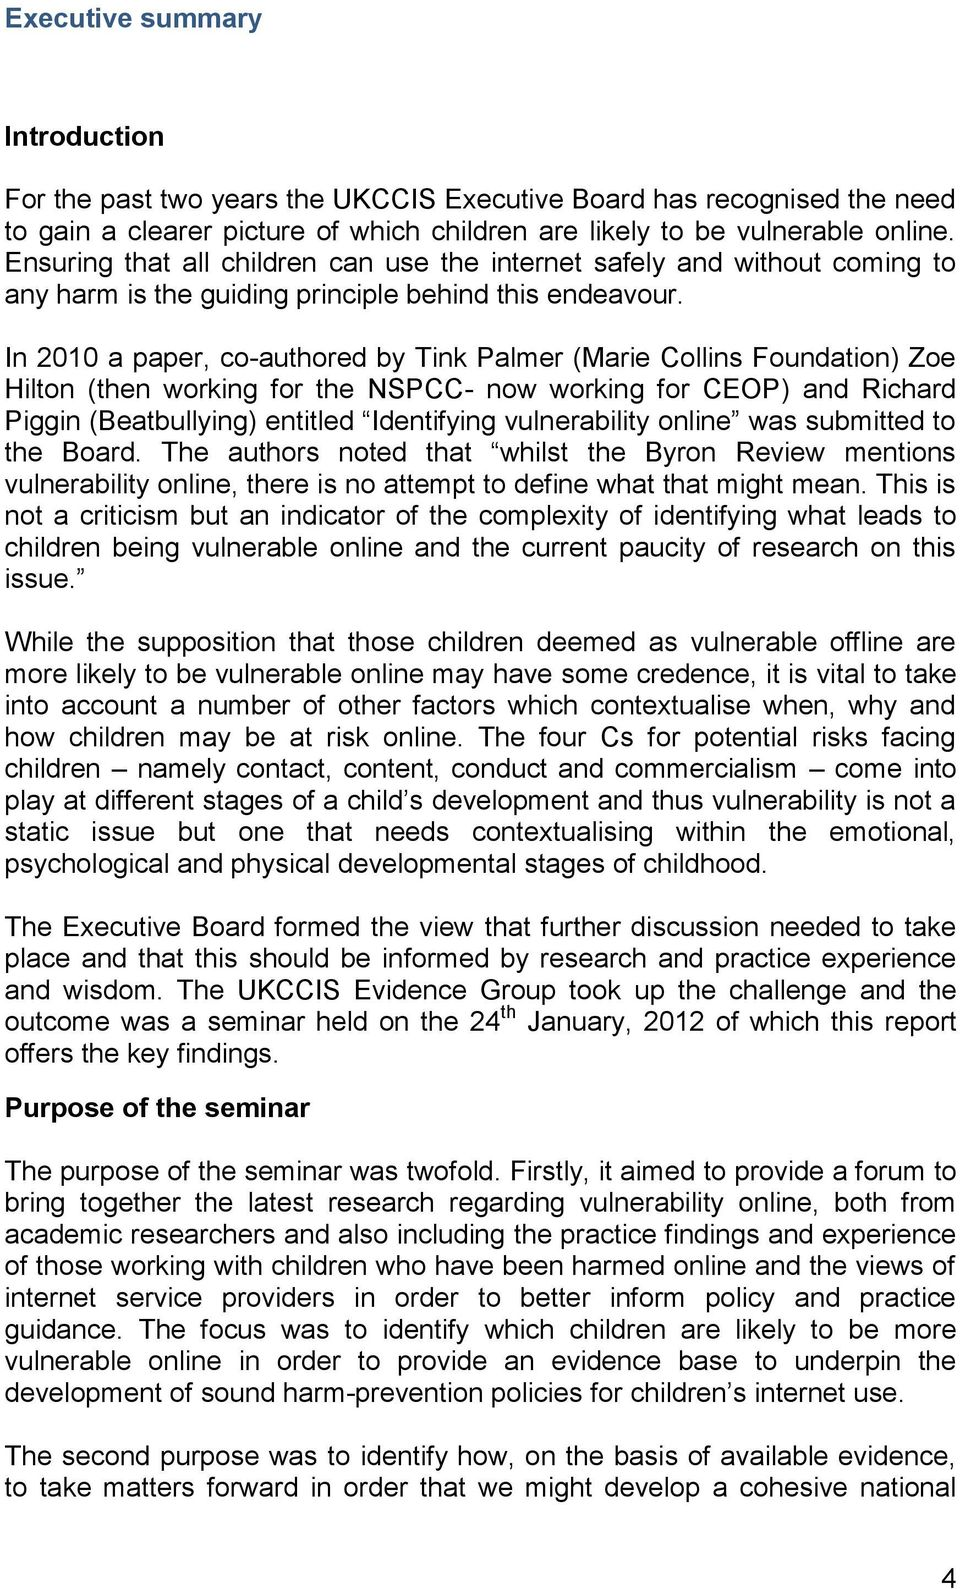 In 2010 a paper, co-authored by Tink Palmer (Marie Collins Foundation) Zoe Hilton (then working for the NSPCC- now working for CEOP) and Richard Piggin (Beatbullying) entitled Identifying